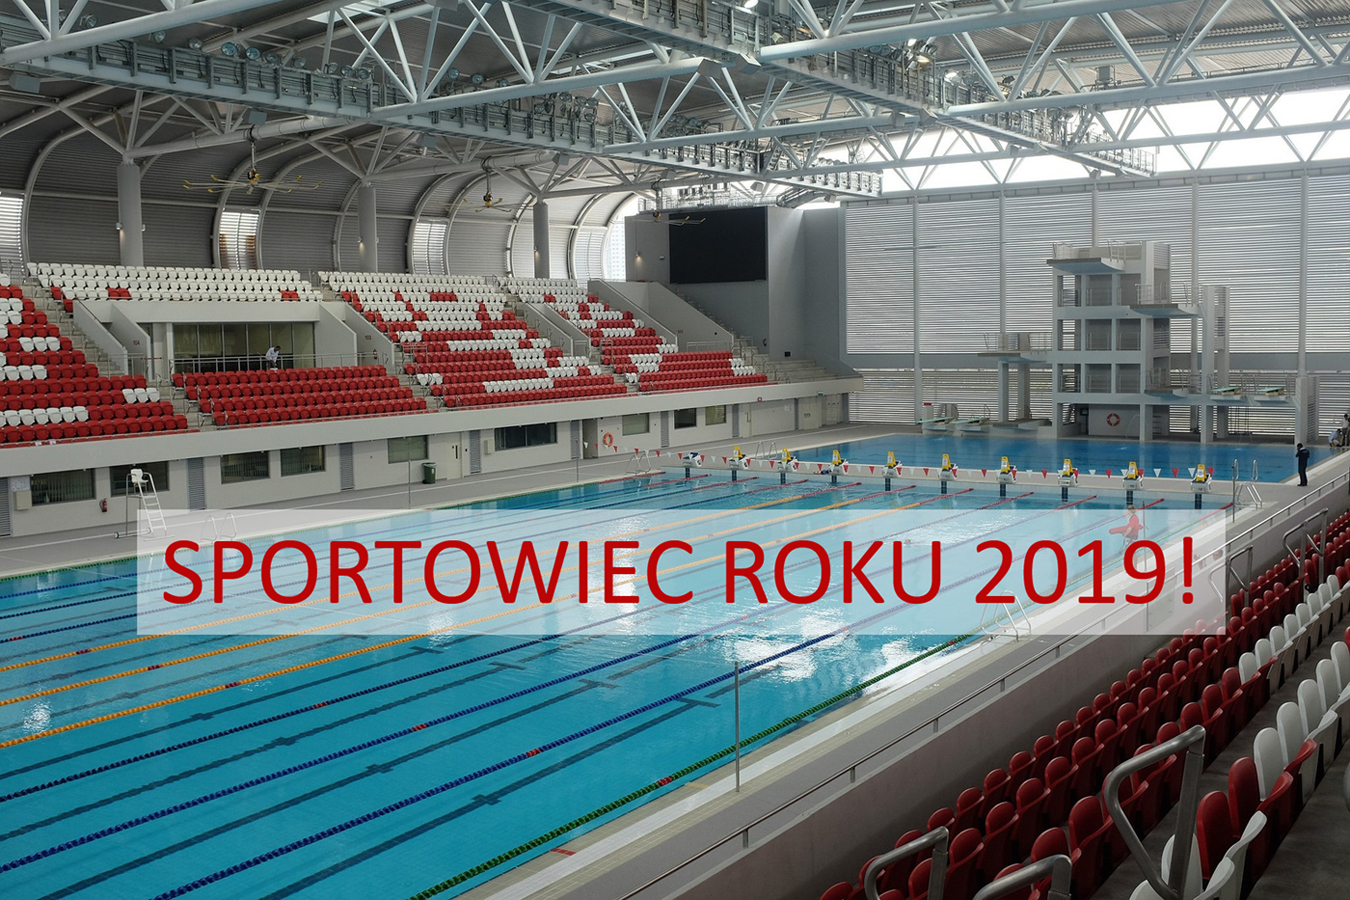 olympic-swimming-pool-1185774_1920